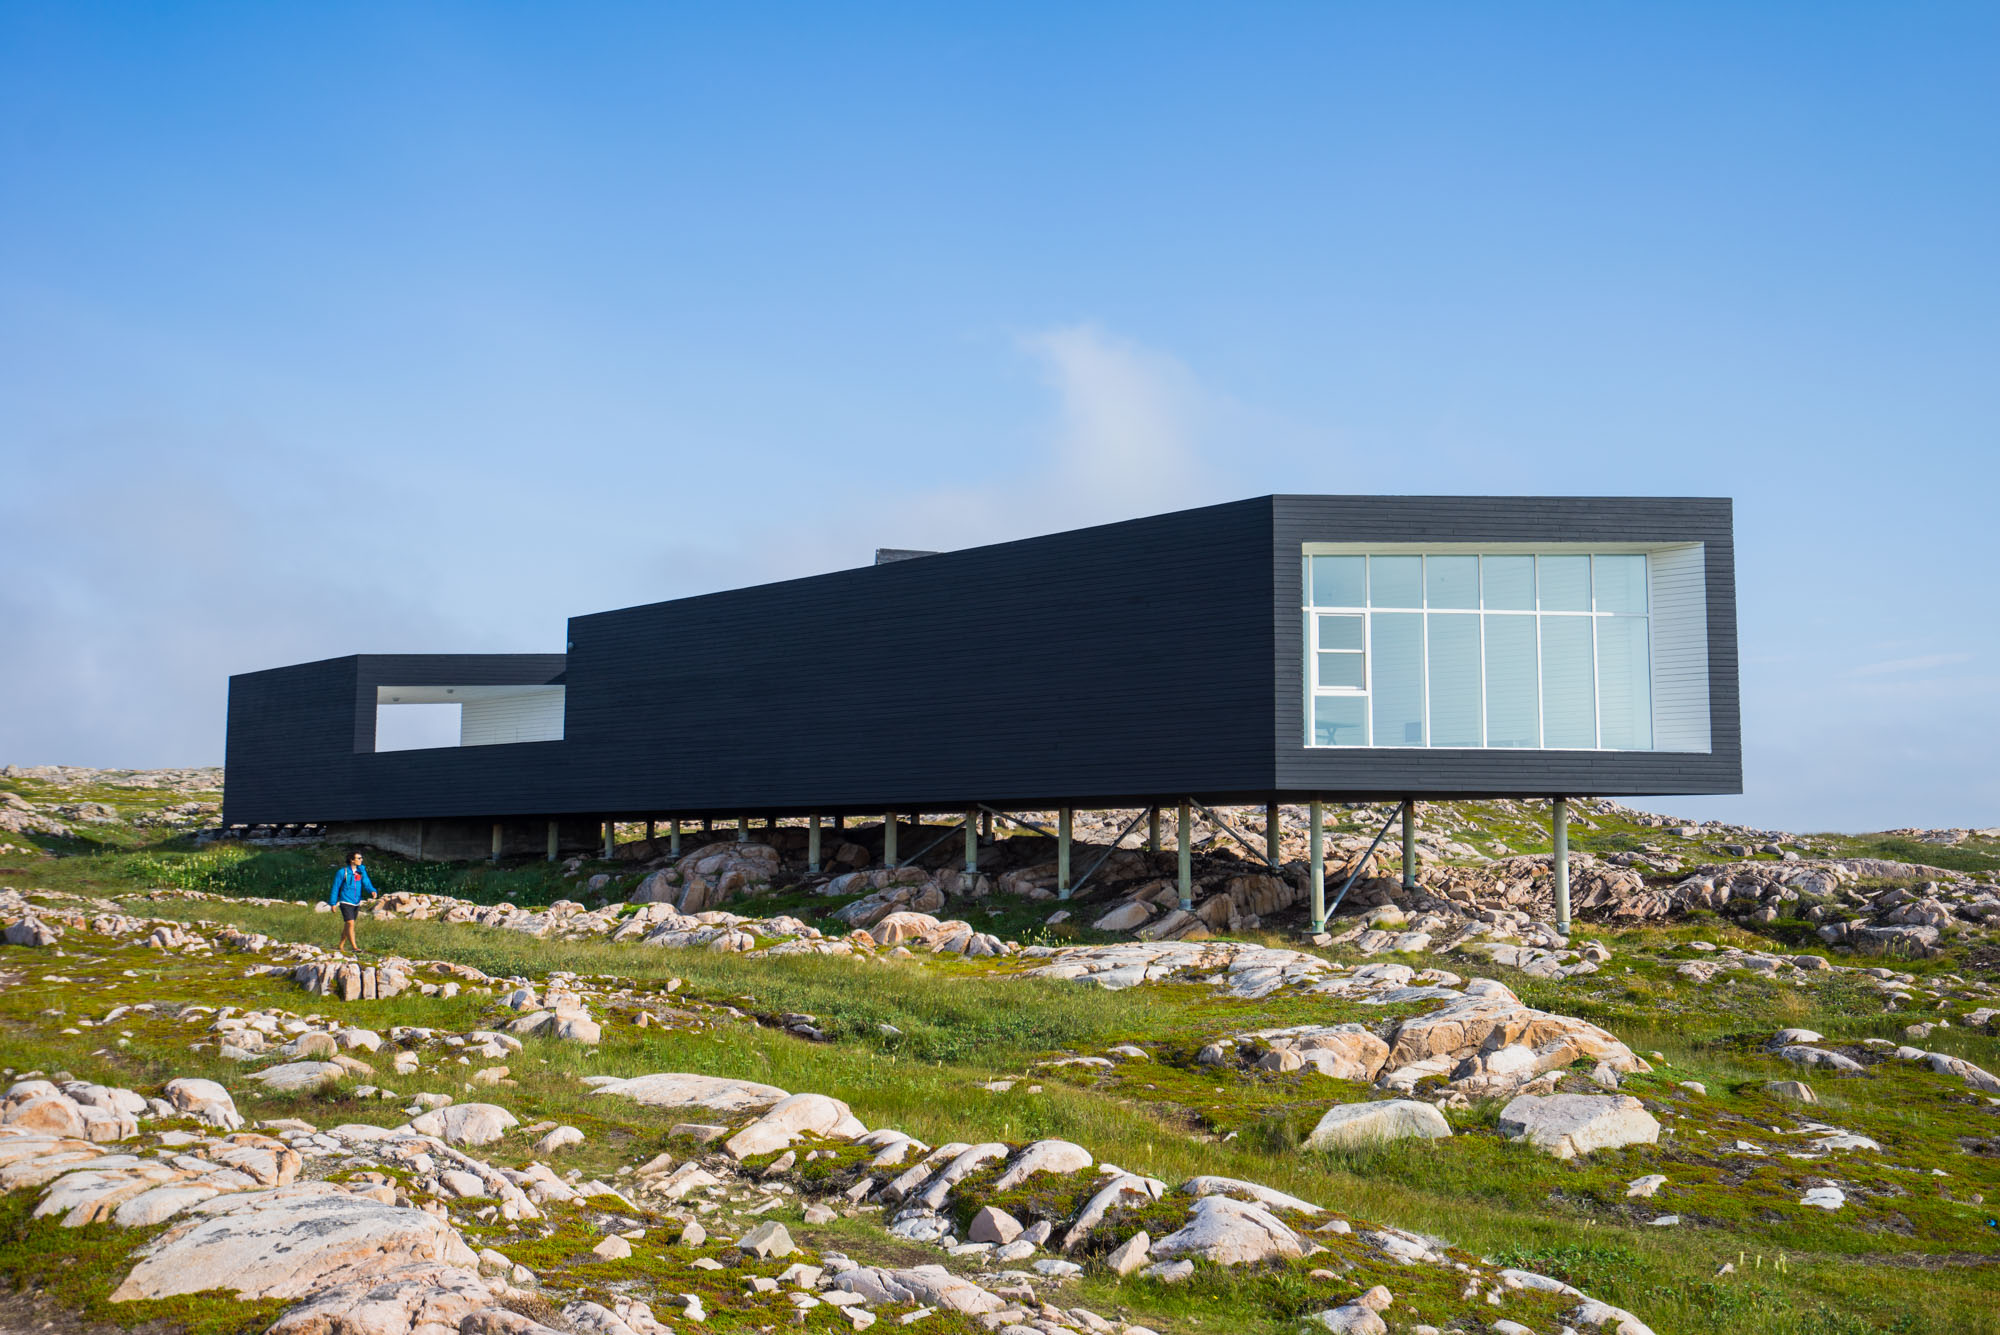 One of many beautiful examples of architecture on Fogo